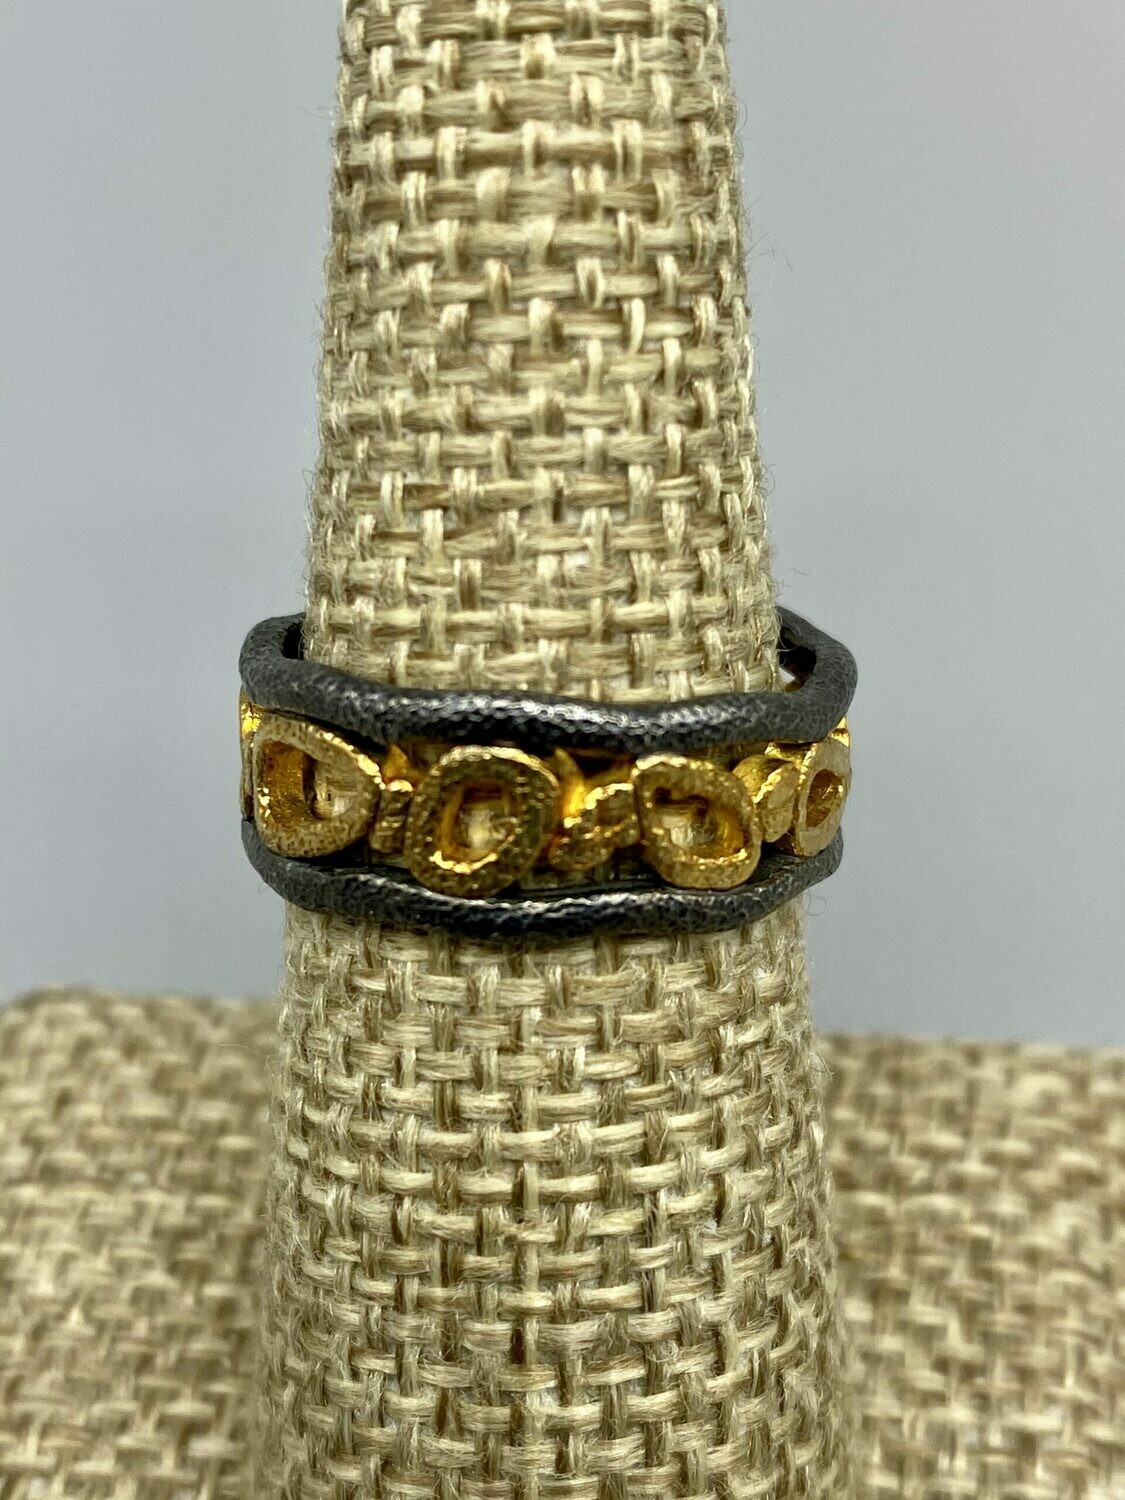 Sz 7.5 18k and Sterling Silver, Floating Pebbles Band - Rona Fisher Philadelphia PA